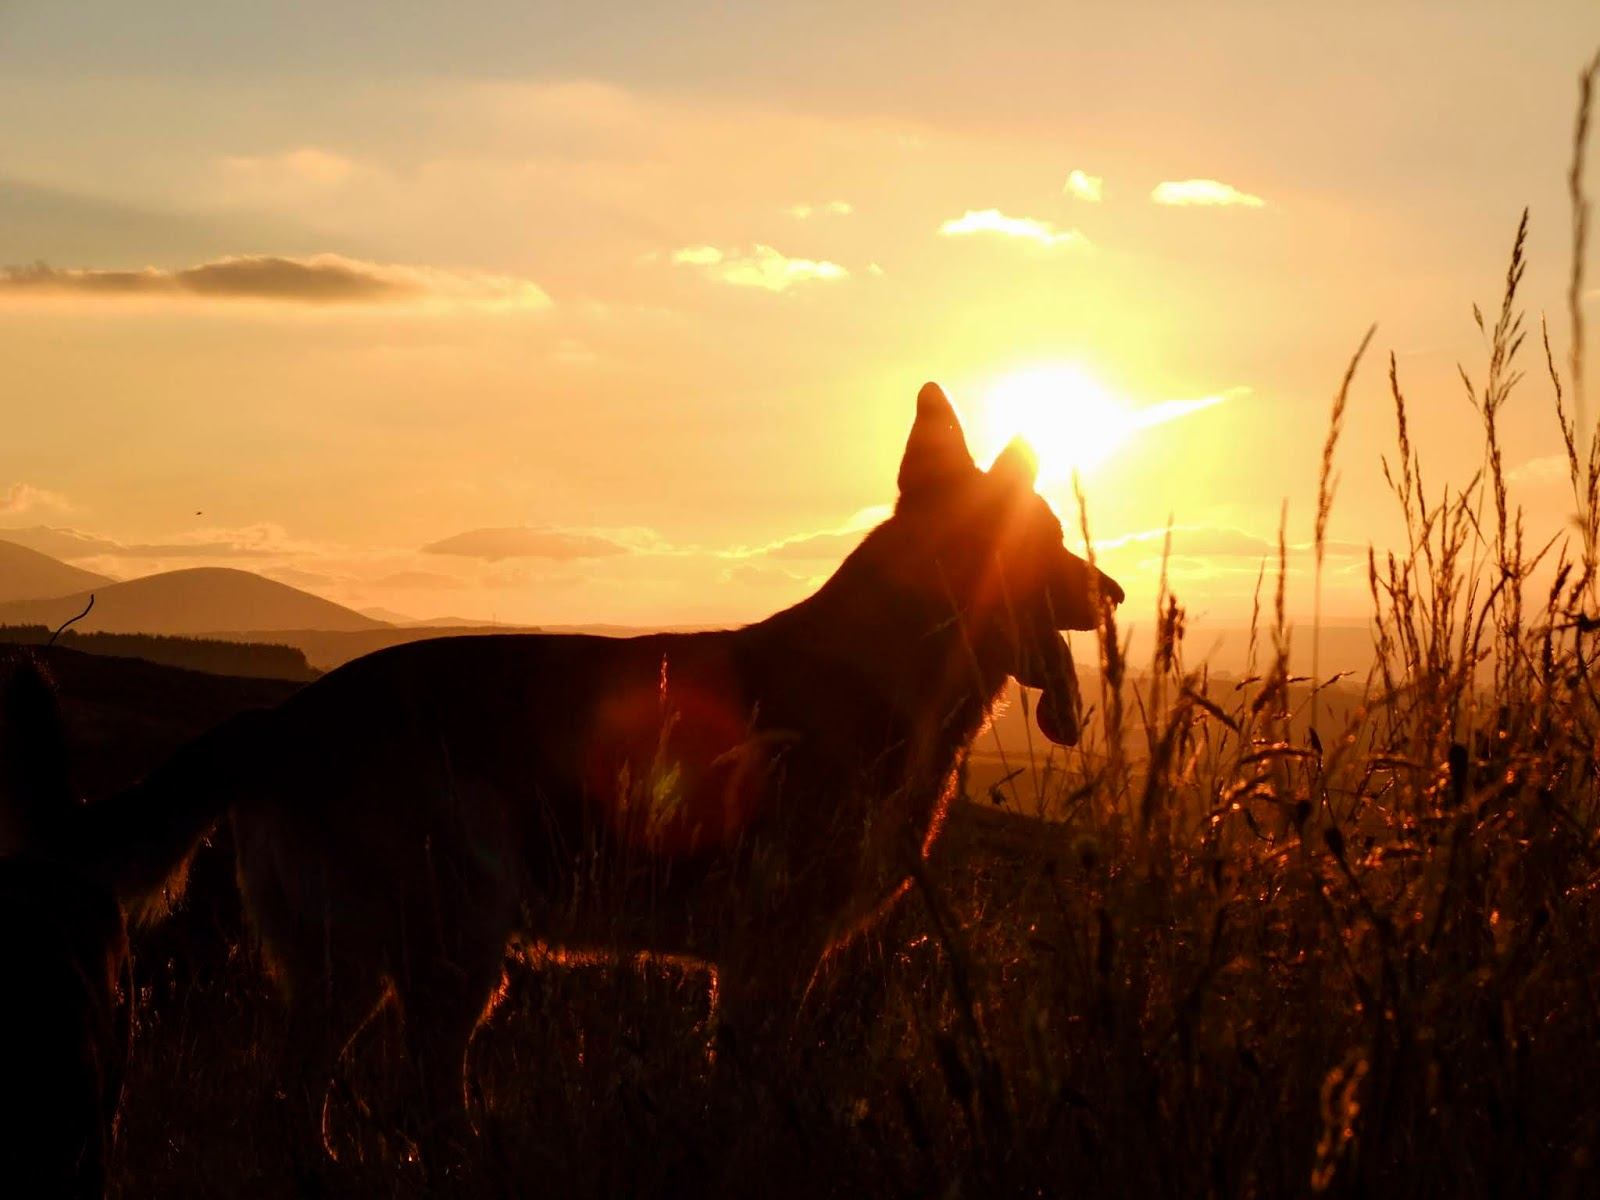 German Shepherd watching a golden autumn sunset in the Boggeragh Mountains in County Cork.